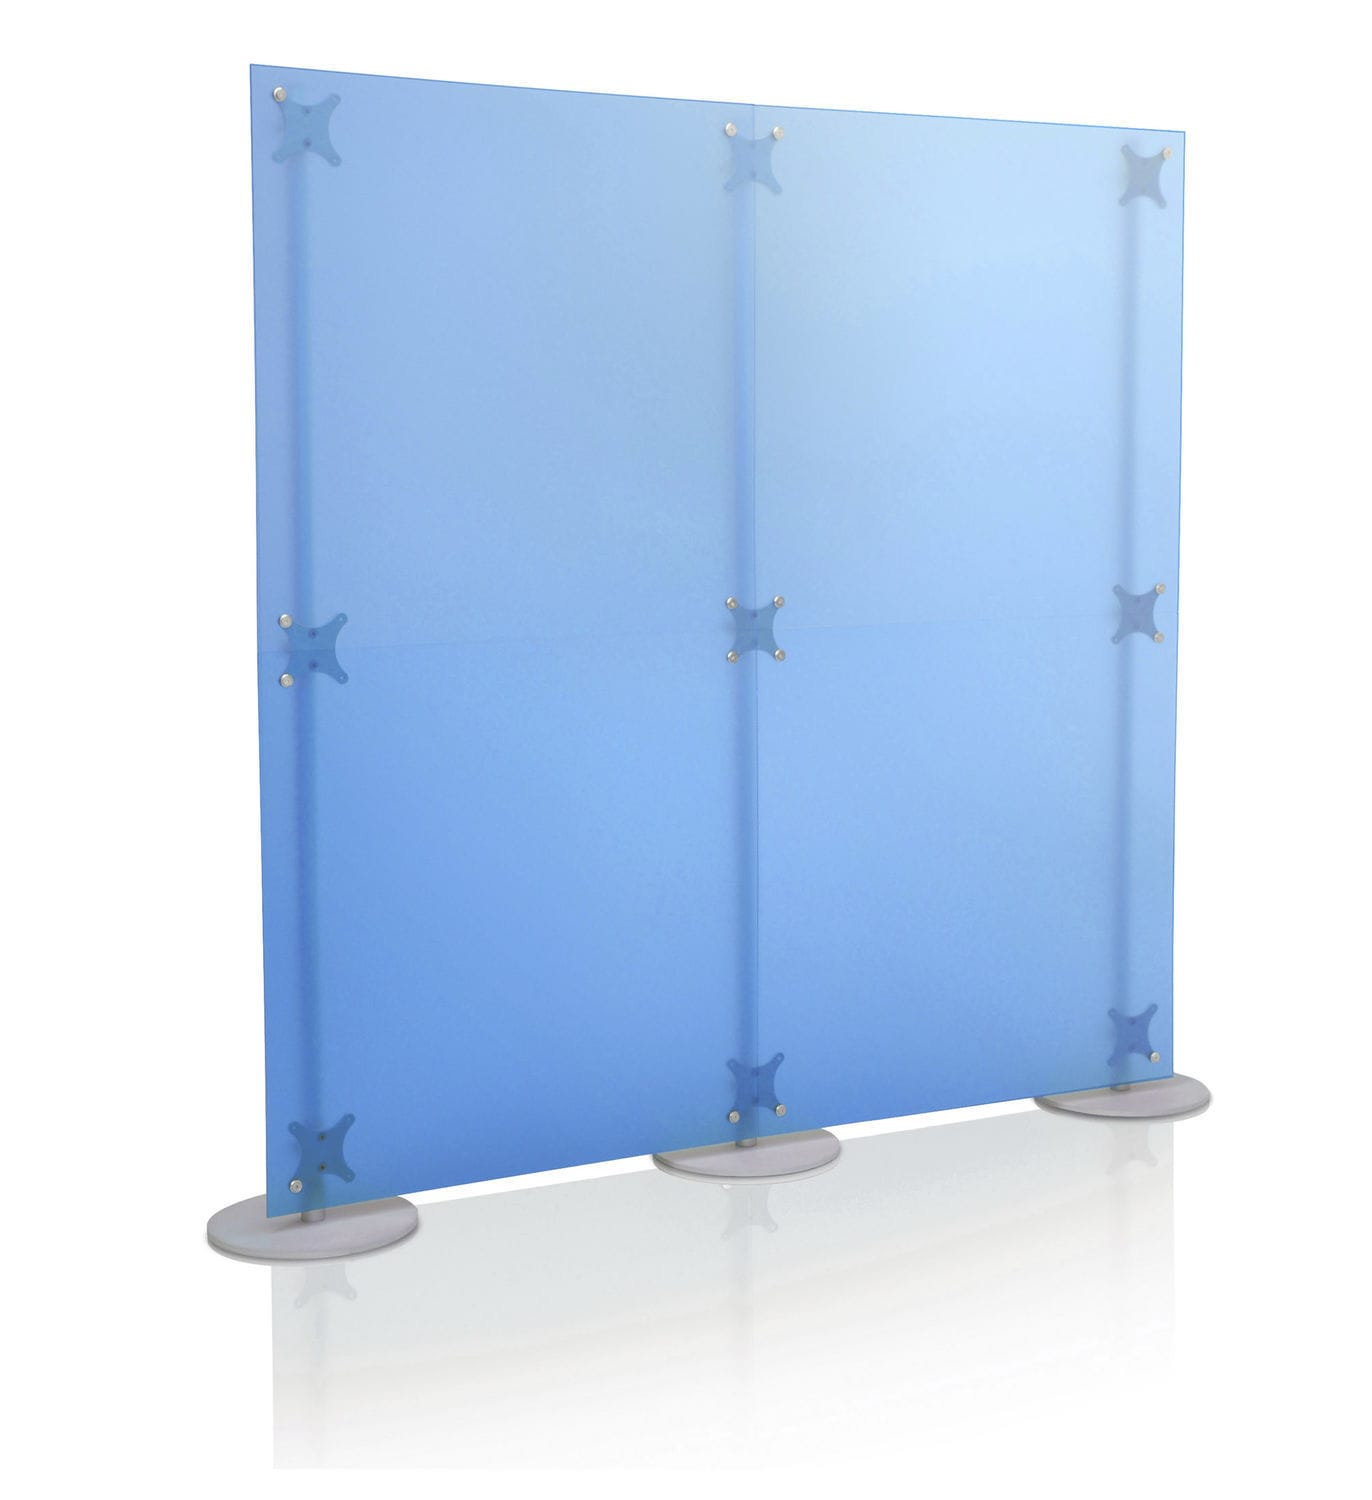 Floor Mounted Office Divider